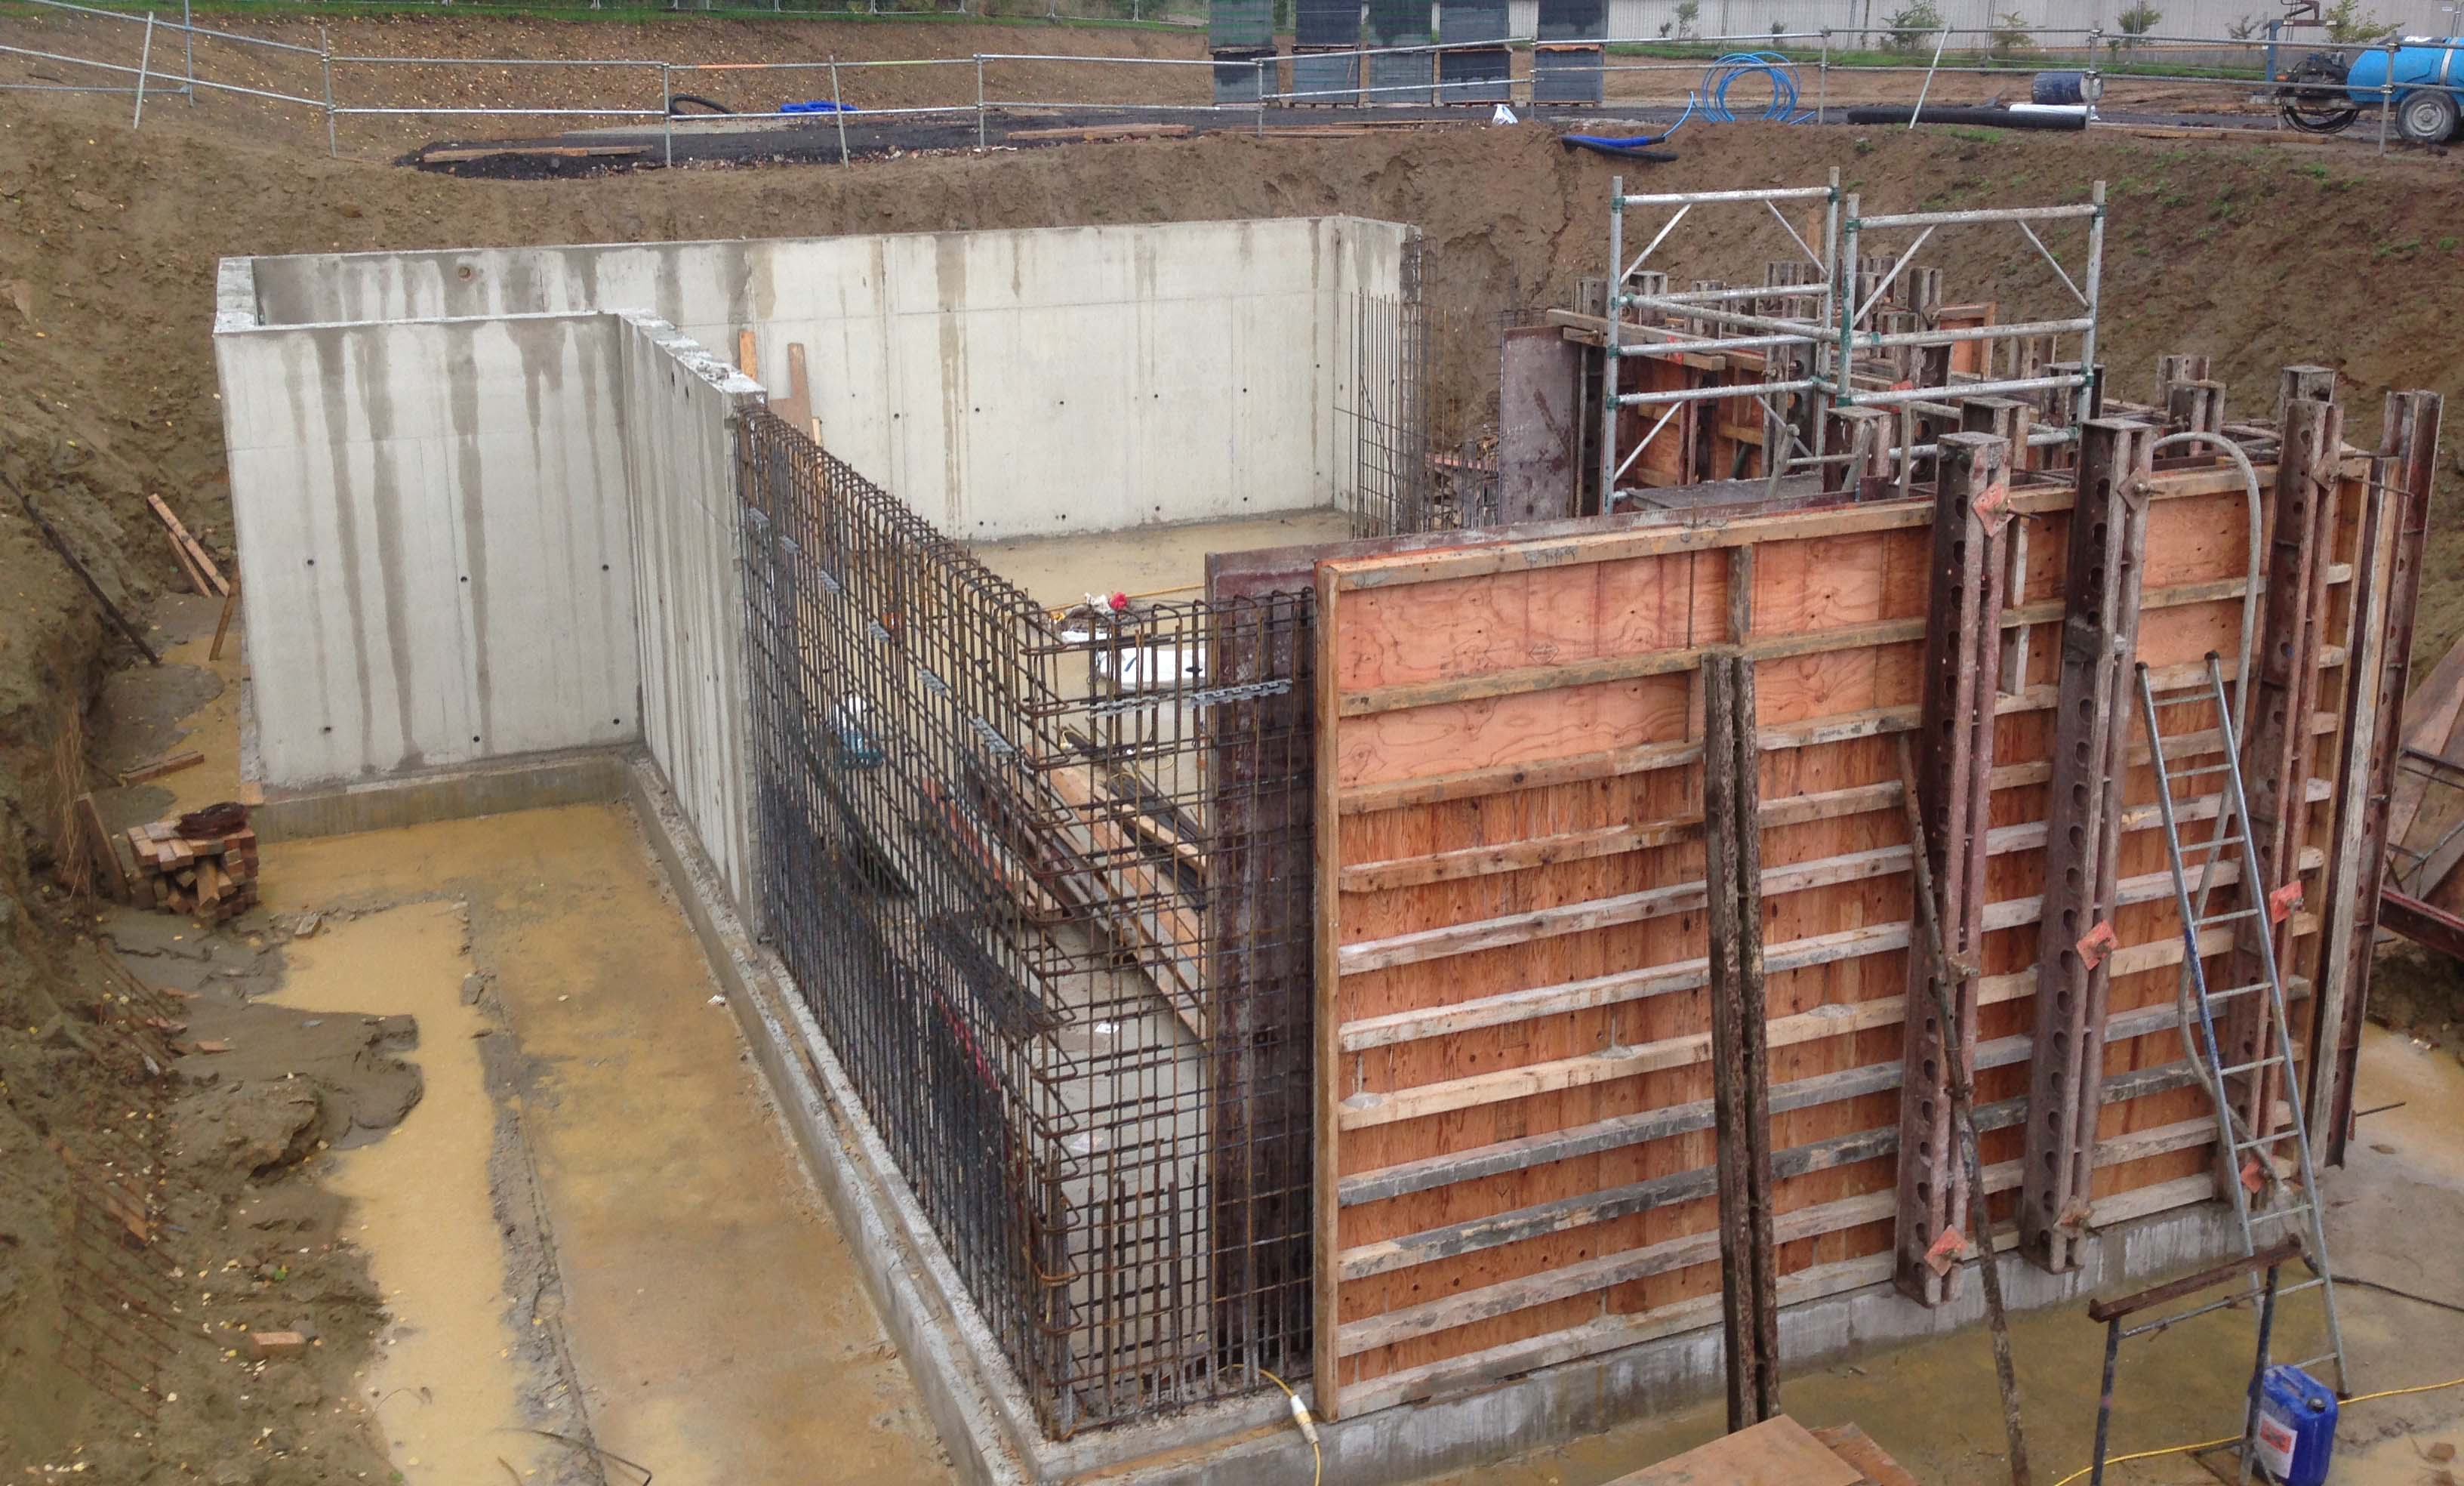 Waterproof Basement Construction : Basement waterproofing and retaining walls bonner formwork